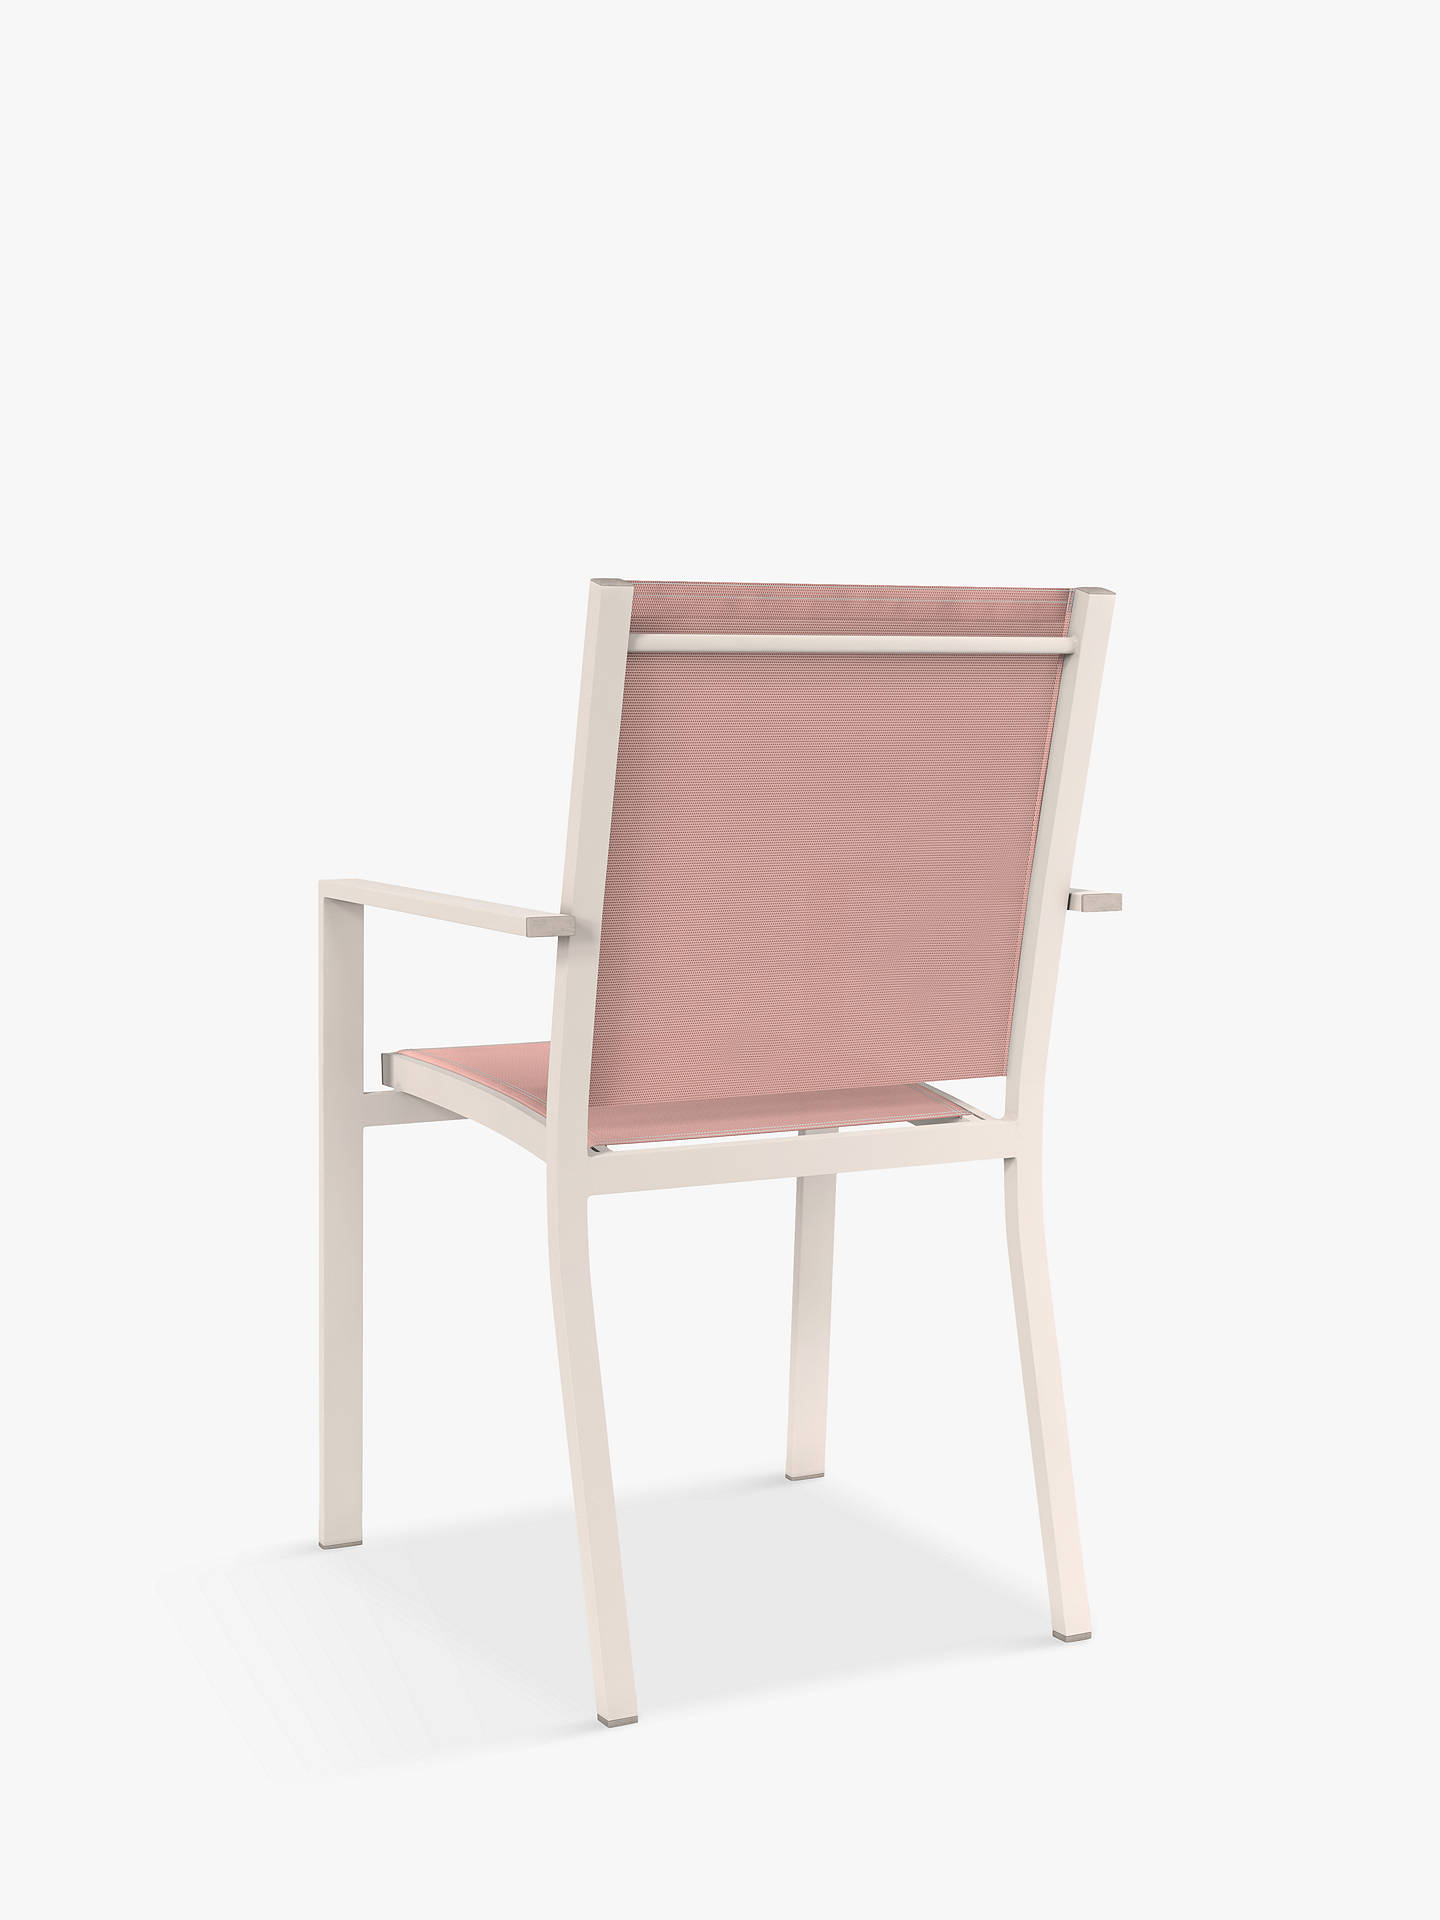 Buy John Lewis & Partners Miami 4-Seat Garden Dining Table & Chairs, Putty/Terracotta Online at johnlewis.com